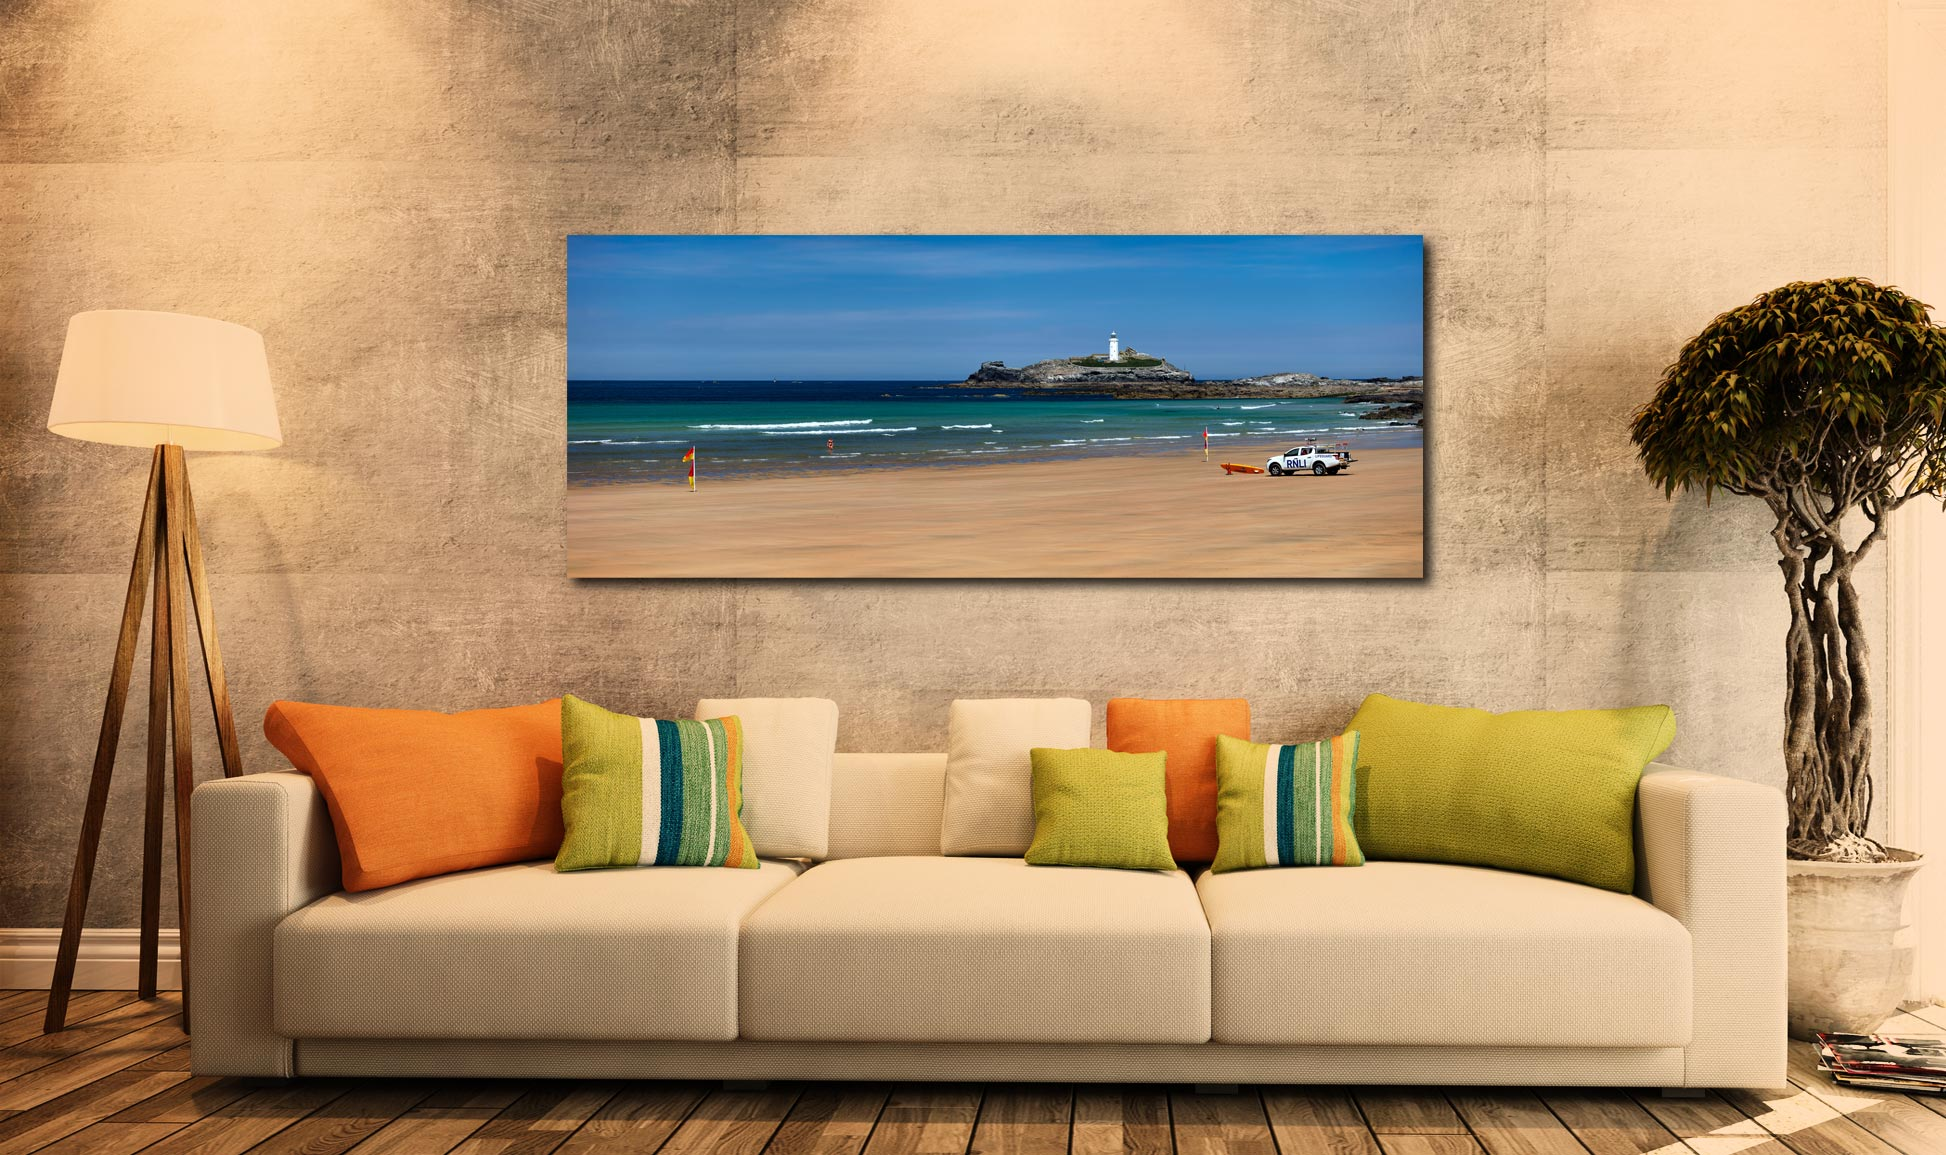 The golden sands of Godrevy Beach and Lighthouse in St Ives Bay - Print Aluminium Backing With Acrylic Glazing on Wall